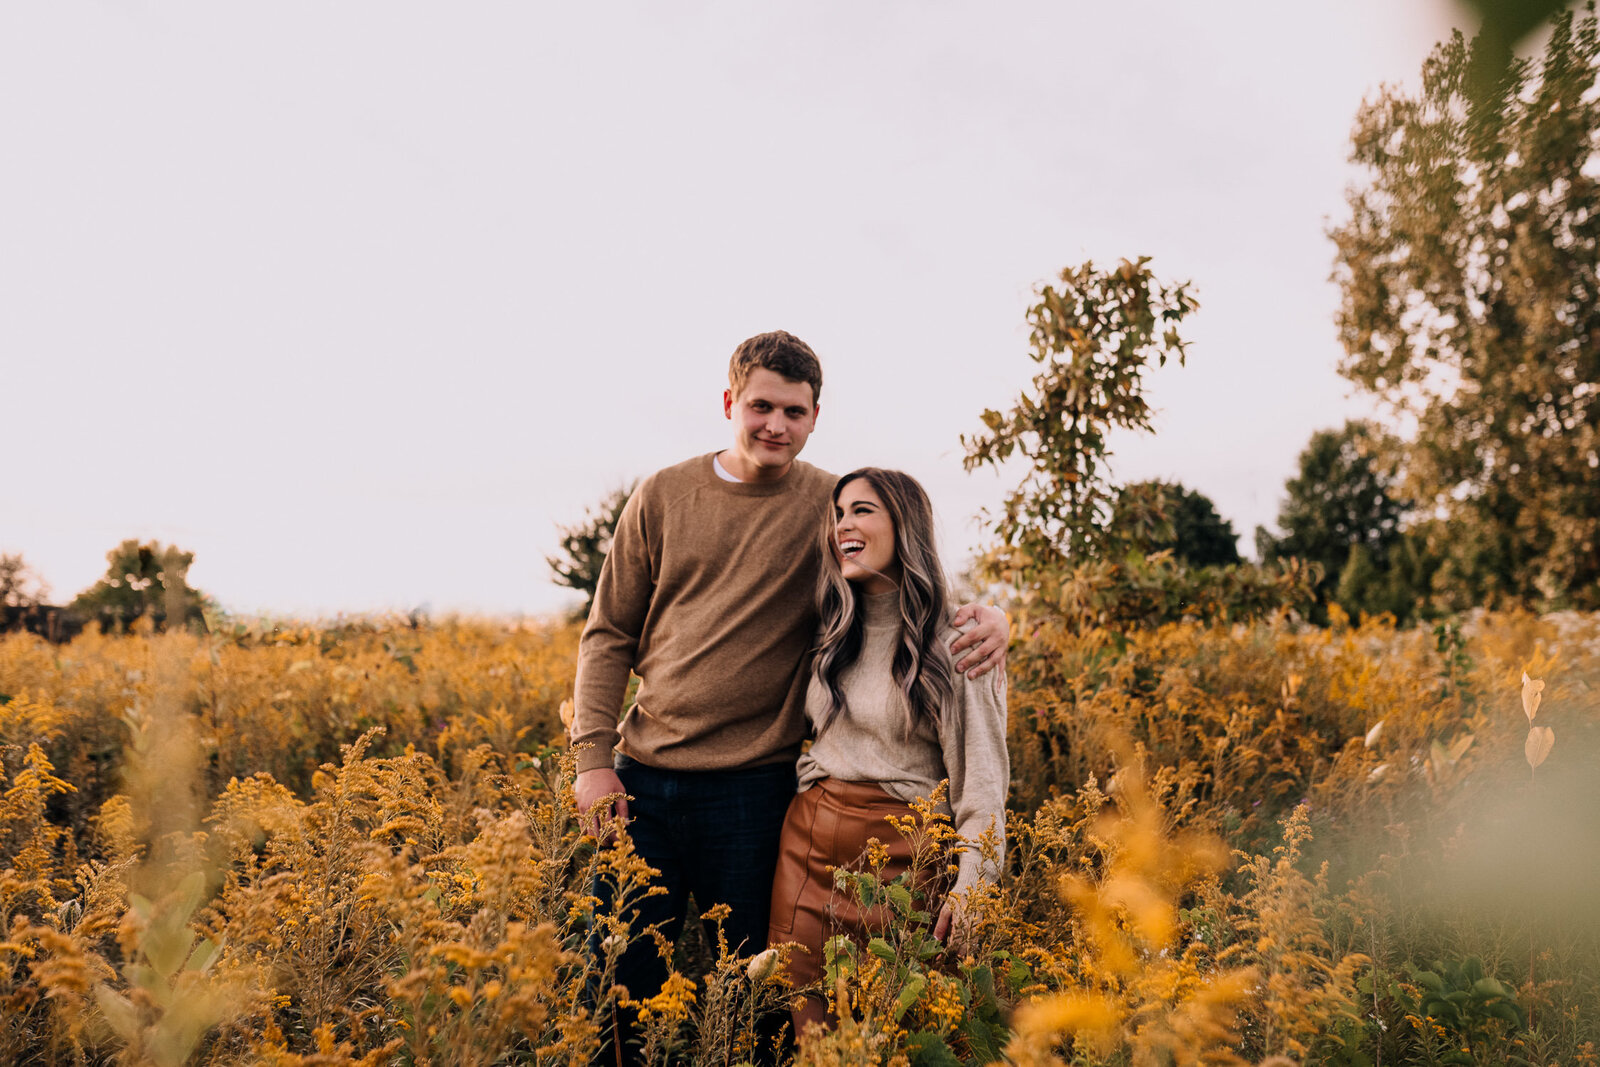 haley-justin-columbus-ohio-wedding-engagement-photography-hoover-dam-reservoir-mud-flats-galena-fall-2